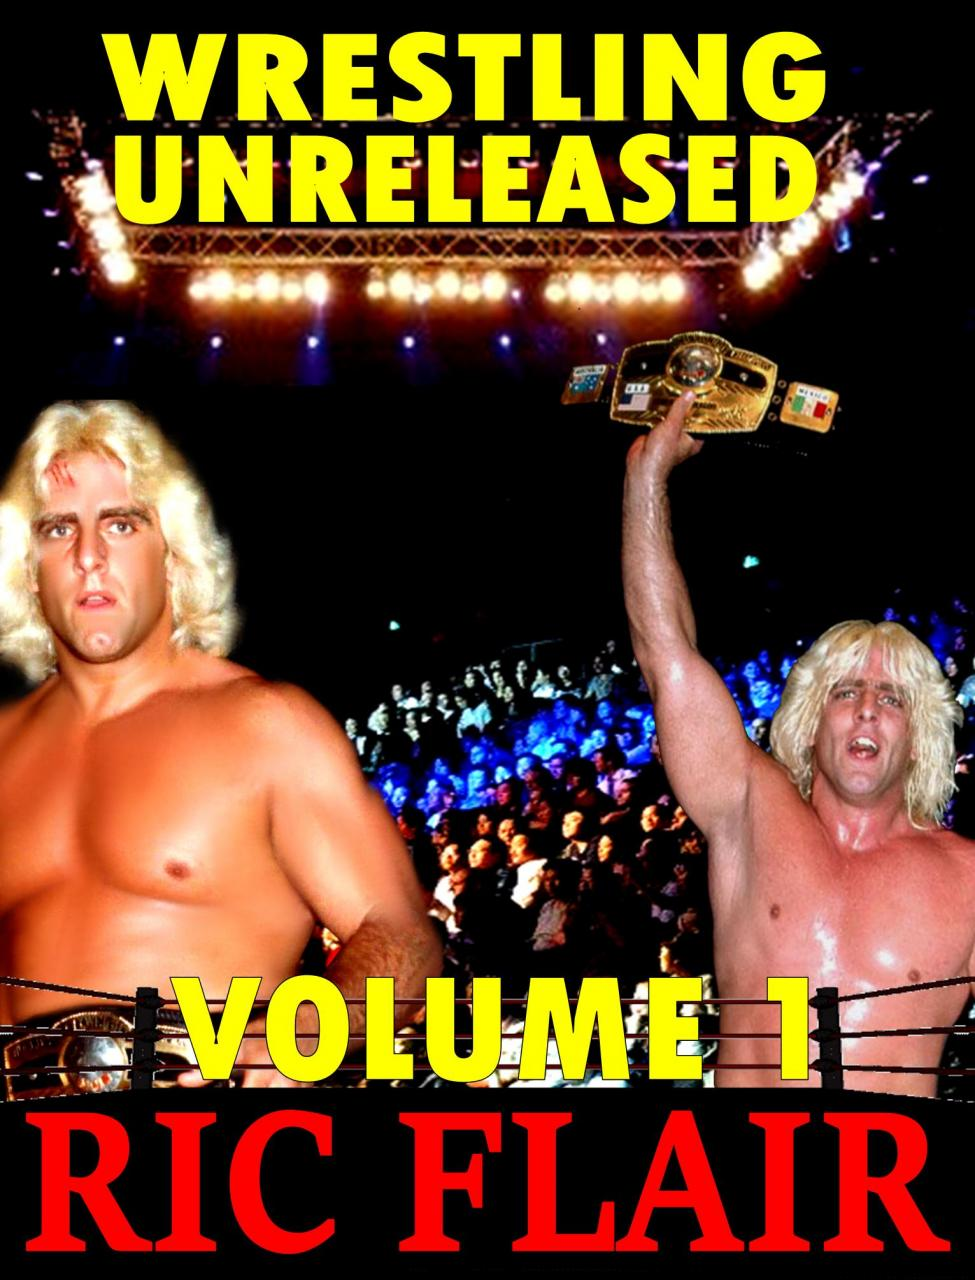 Wrestling Unlreleased Vol 1 Ric Flair